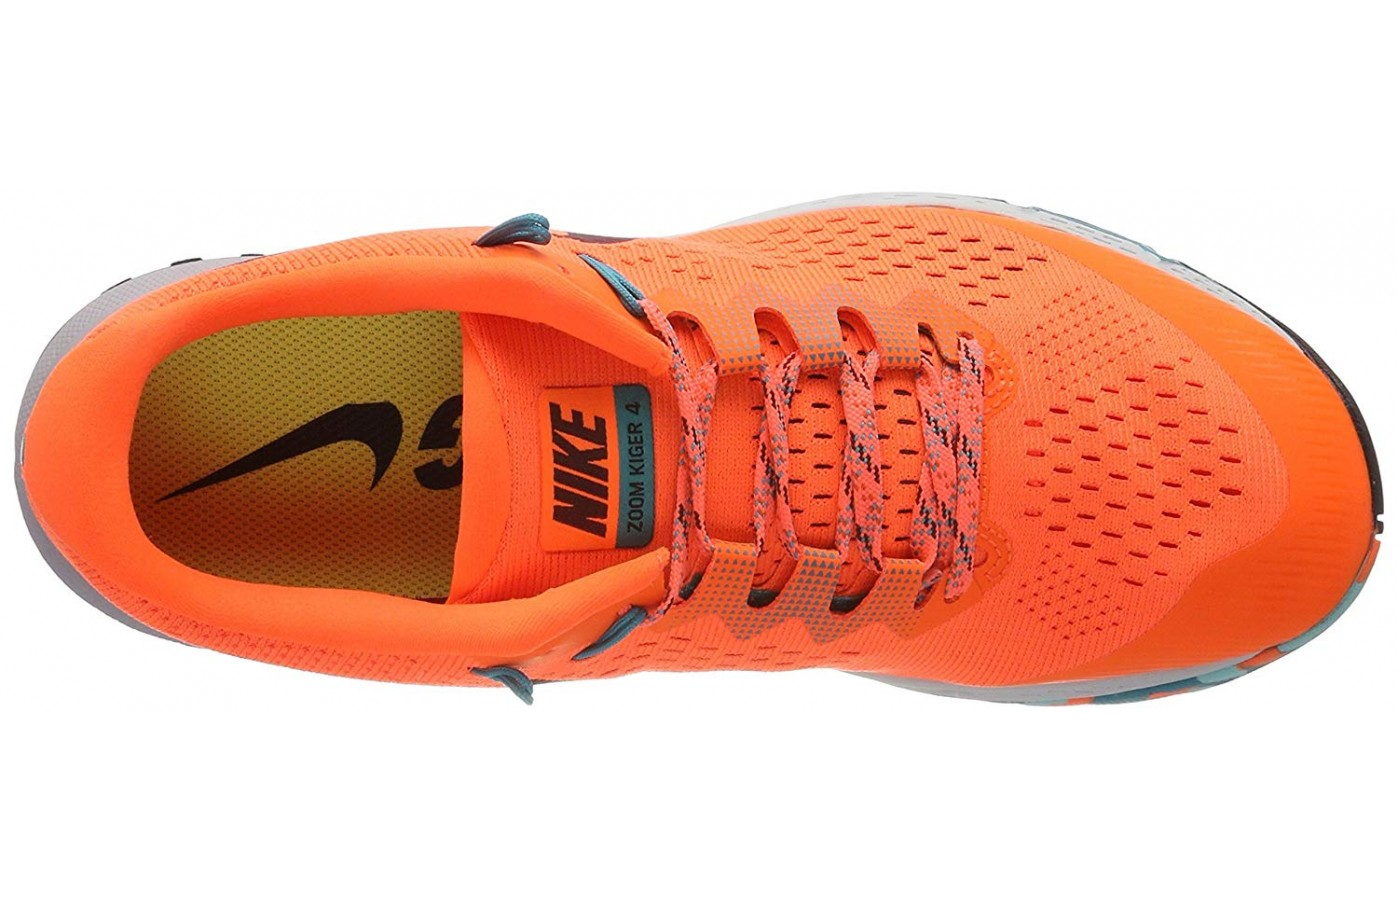 The upper design of the Nike Air Zoom Terra Kiger 4 is very simple compared to other Nike shoes on the market.